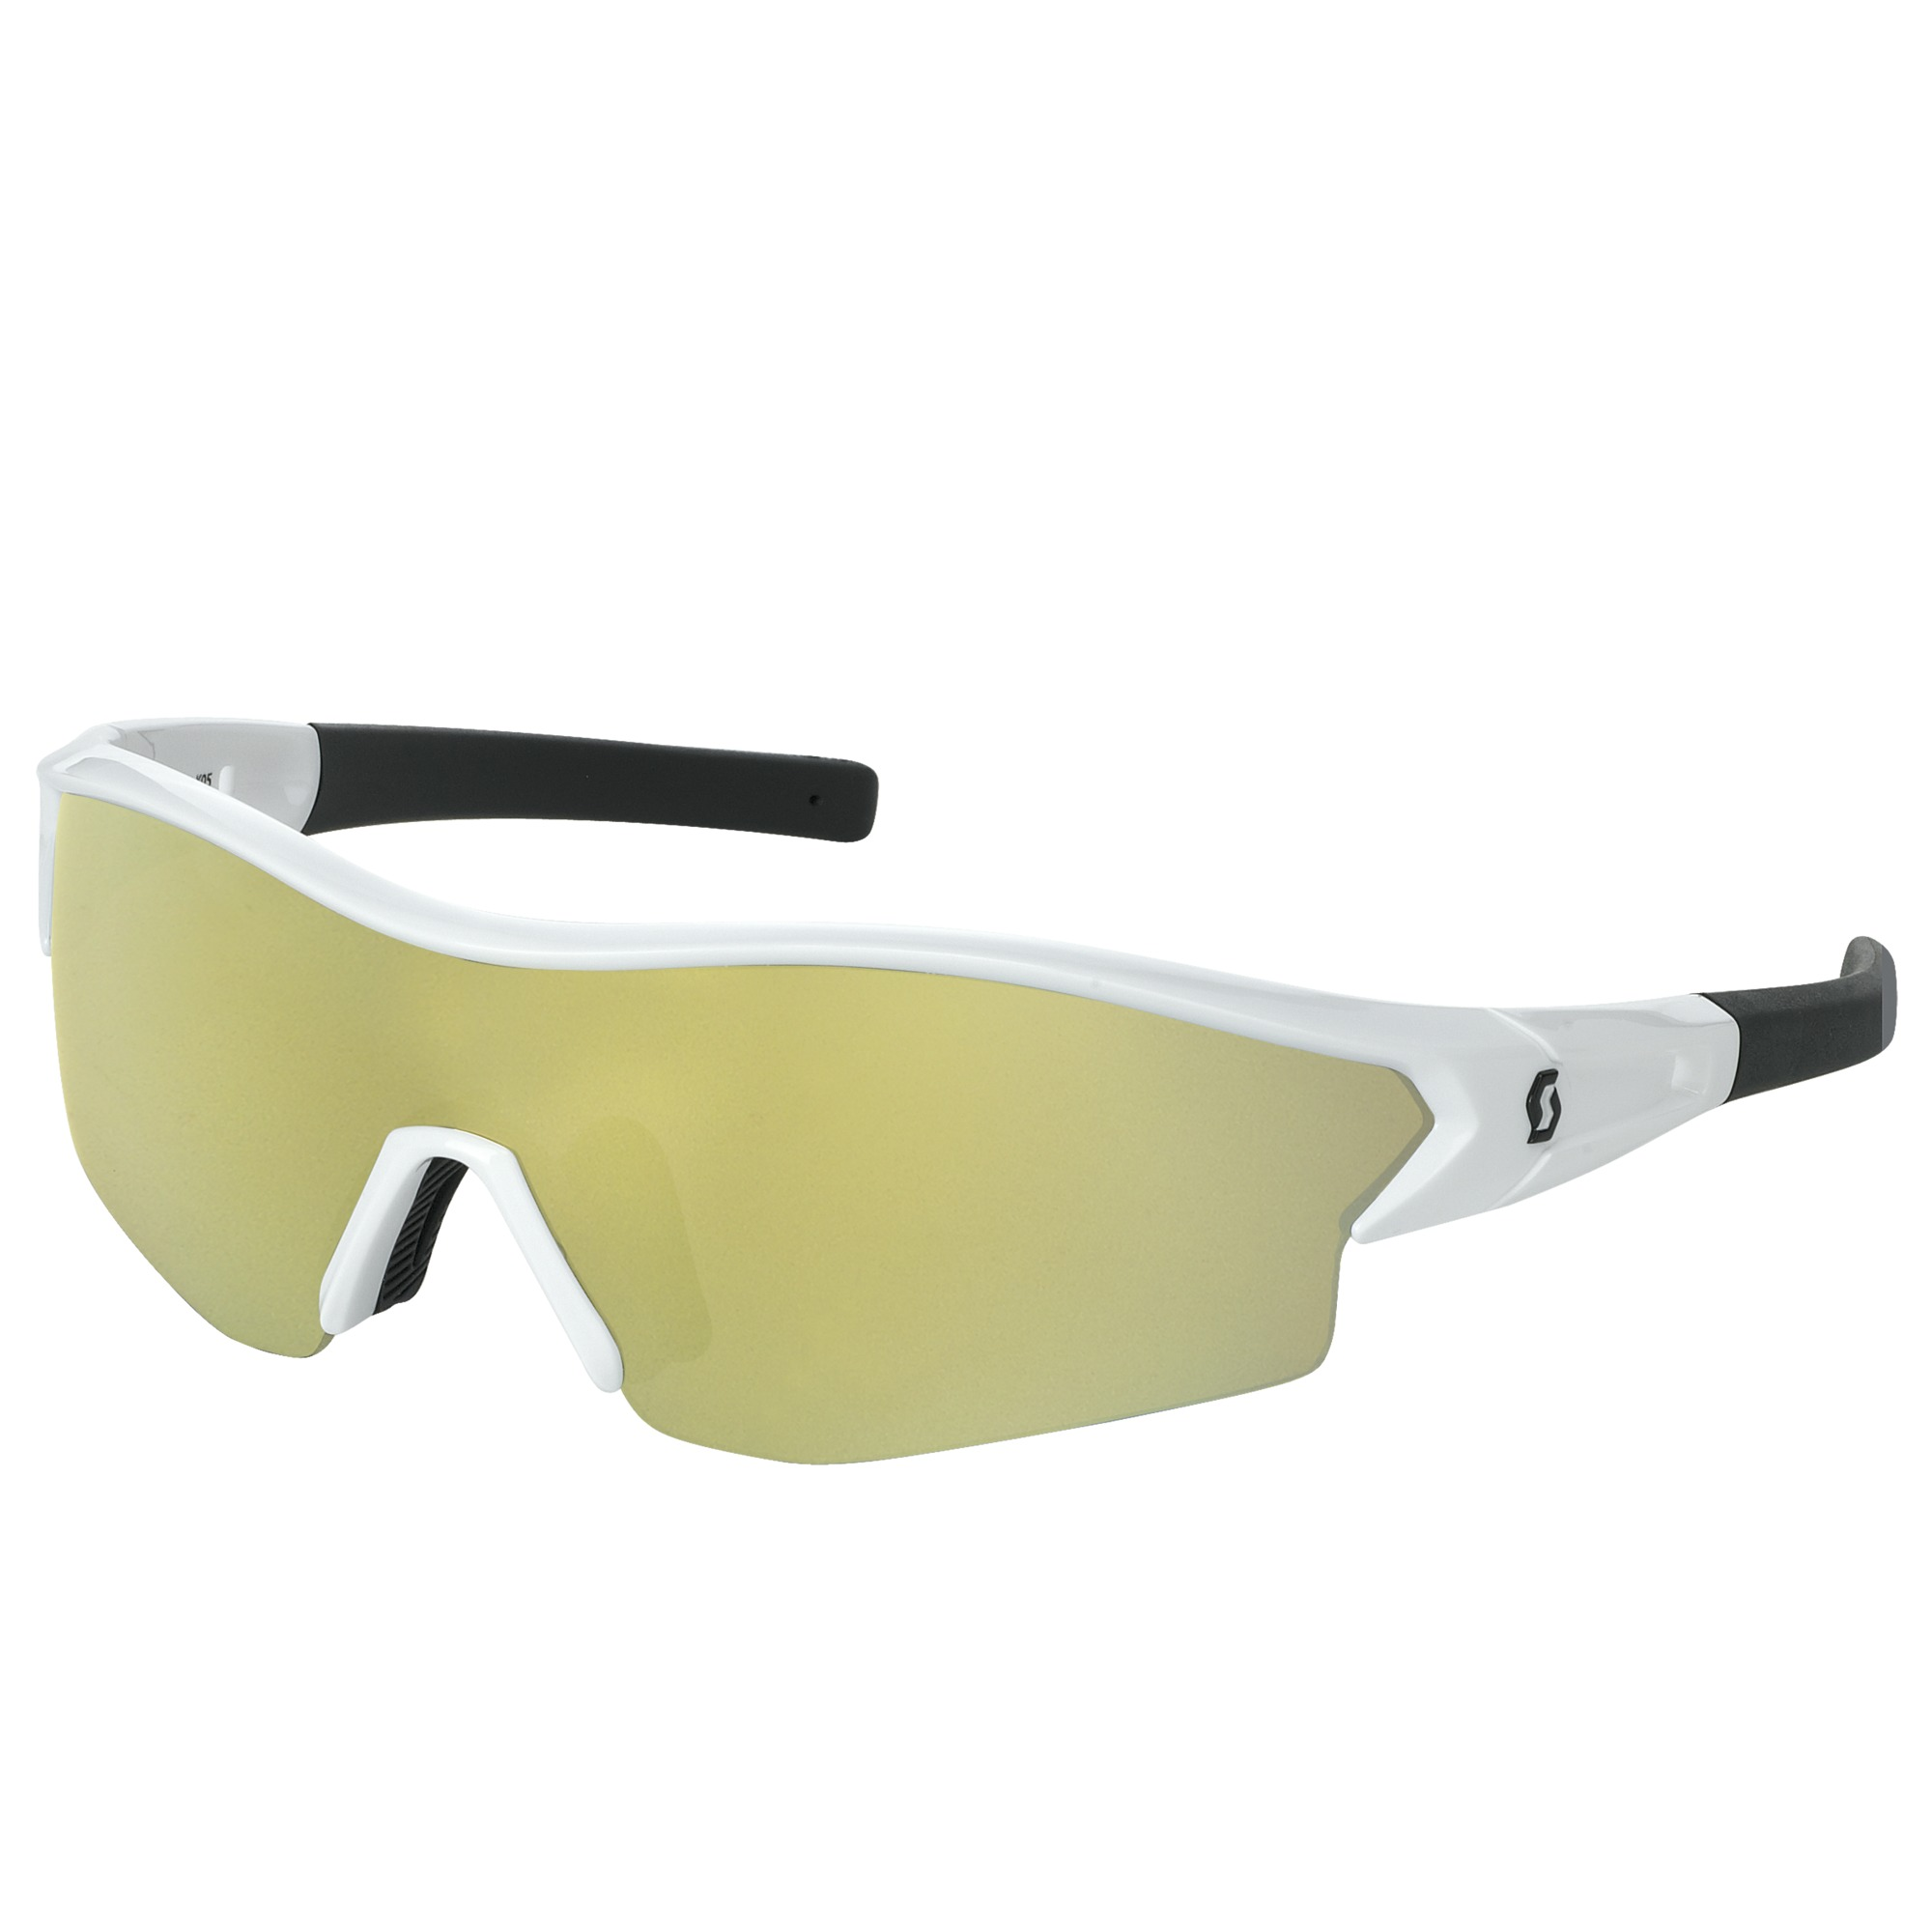 OCCHIALE SPORTIVO SCOTT LEAP SUNGLASSES 238999 WHITE GLOSSY BLACK GOLD